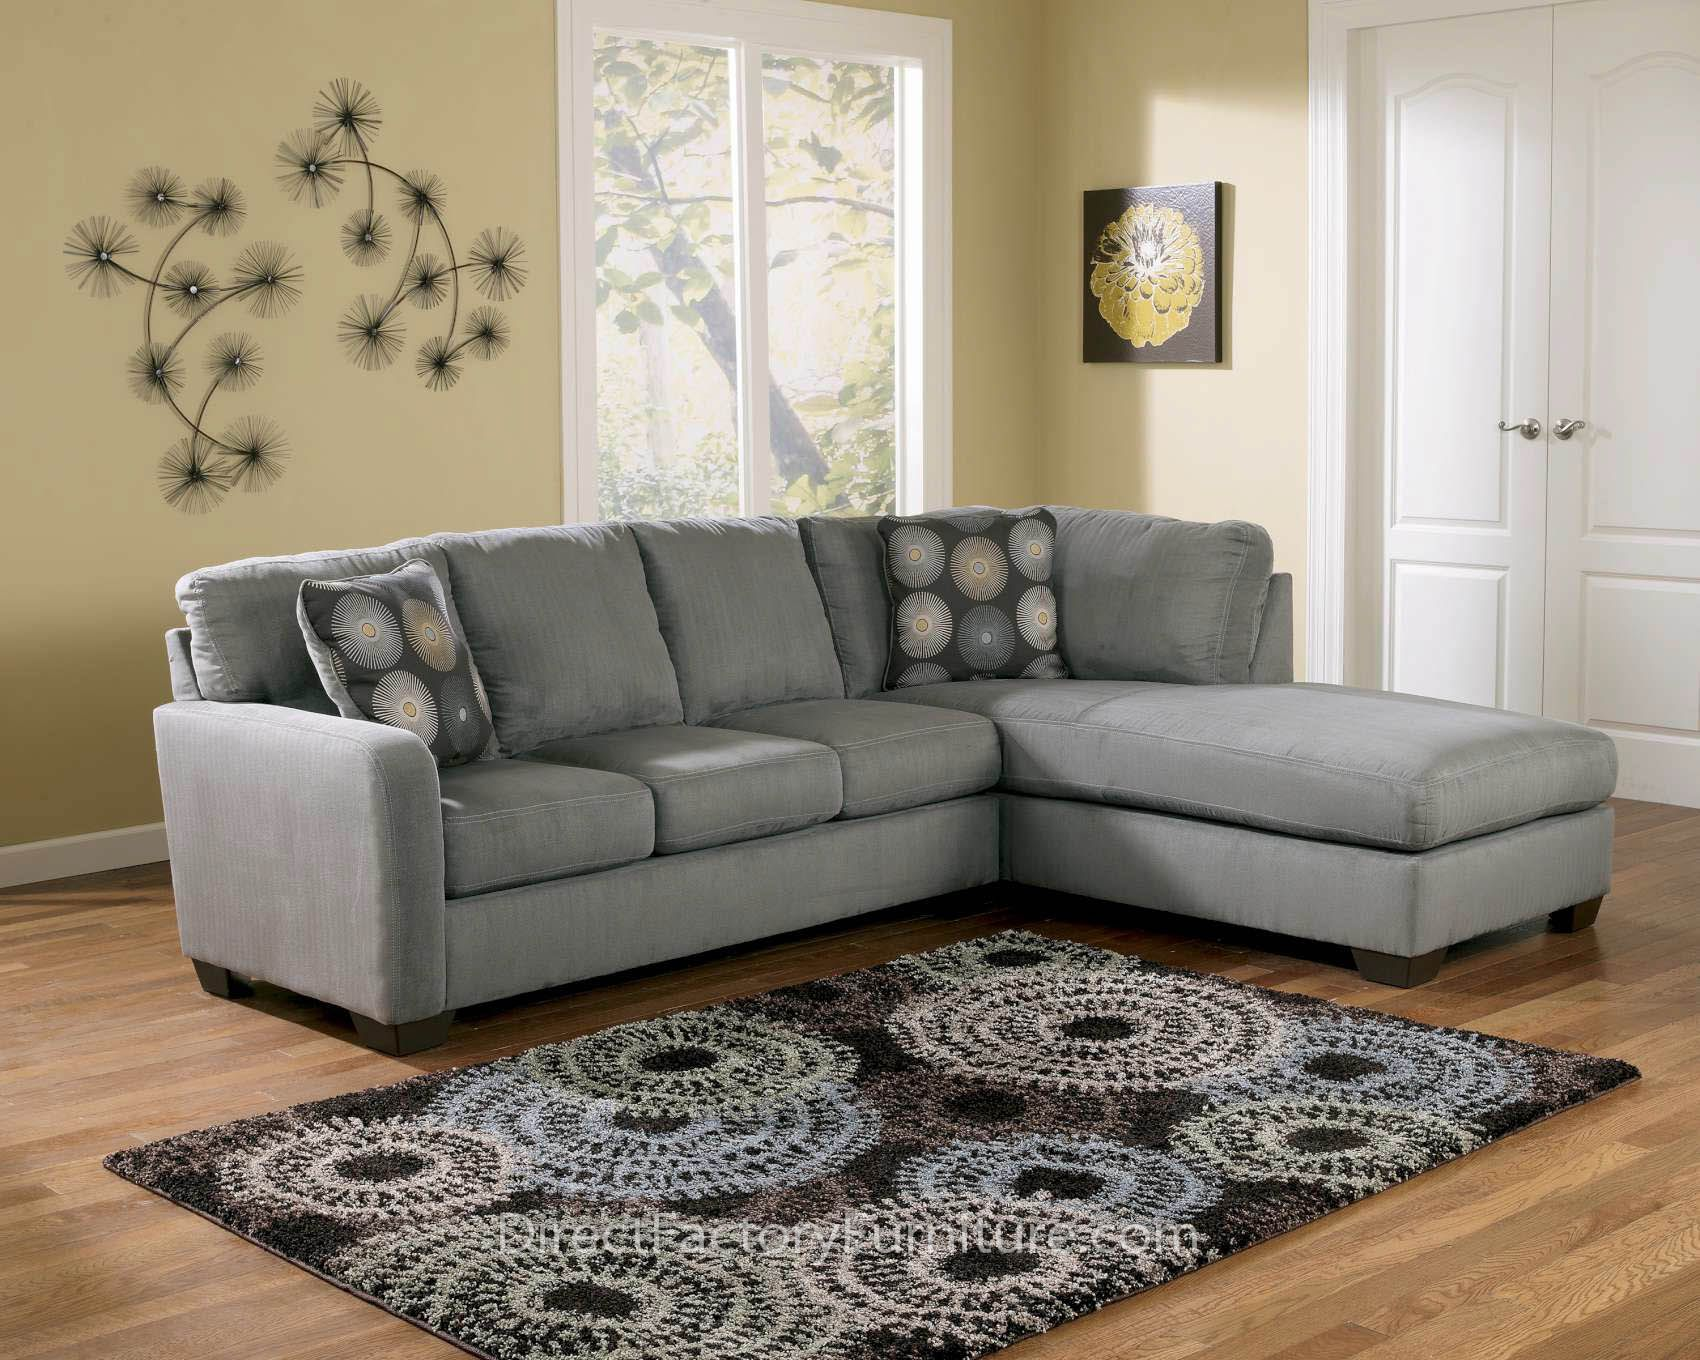 Encouraging Apartment Sized Furniture Living Room In 2020 Sectional Sofa With Chaise Contemporary Sectional Sofa Living Room Furniture